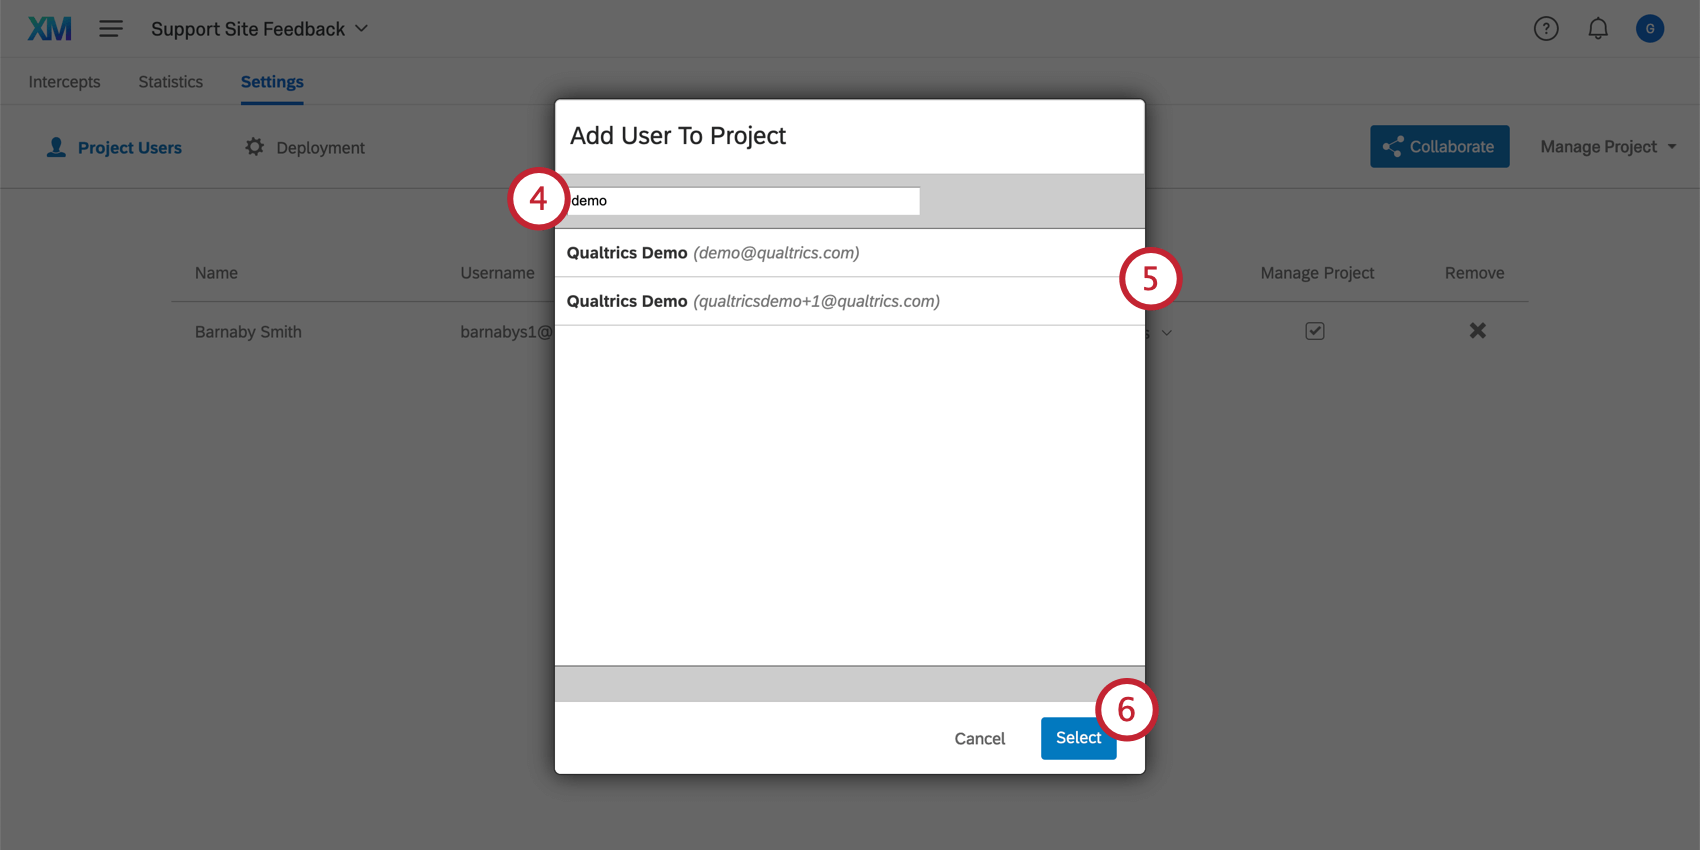 Adding a user to a project